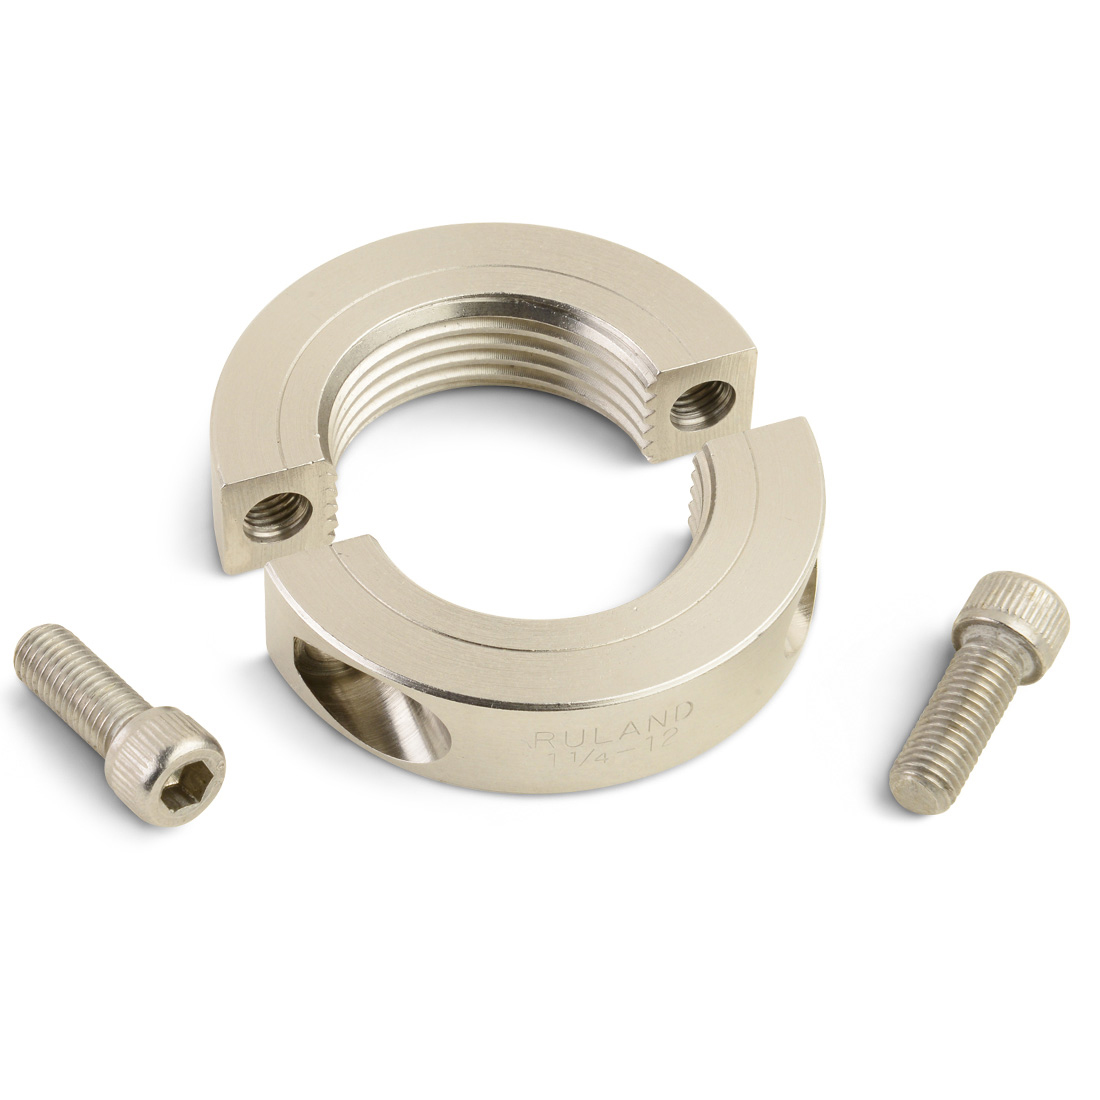 Mountable shaft collars can be used in a wide varirty of applications